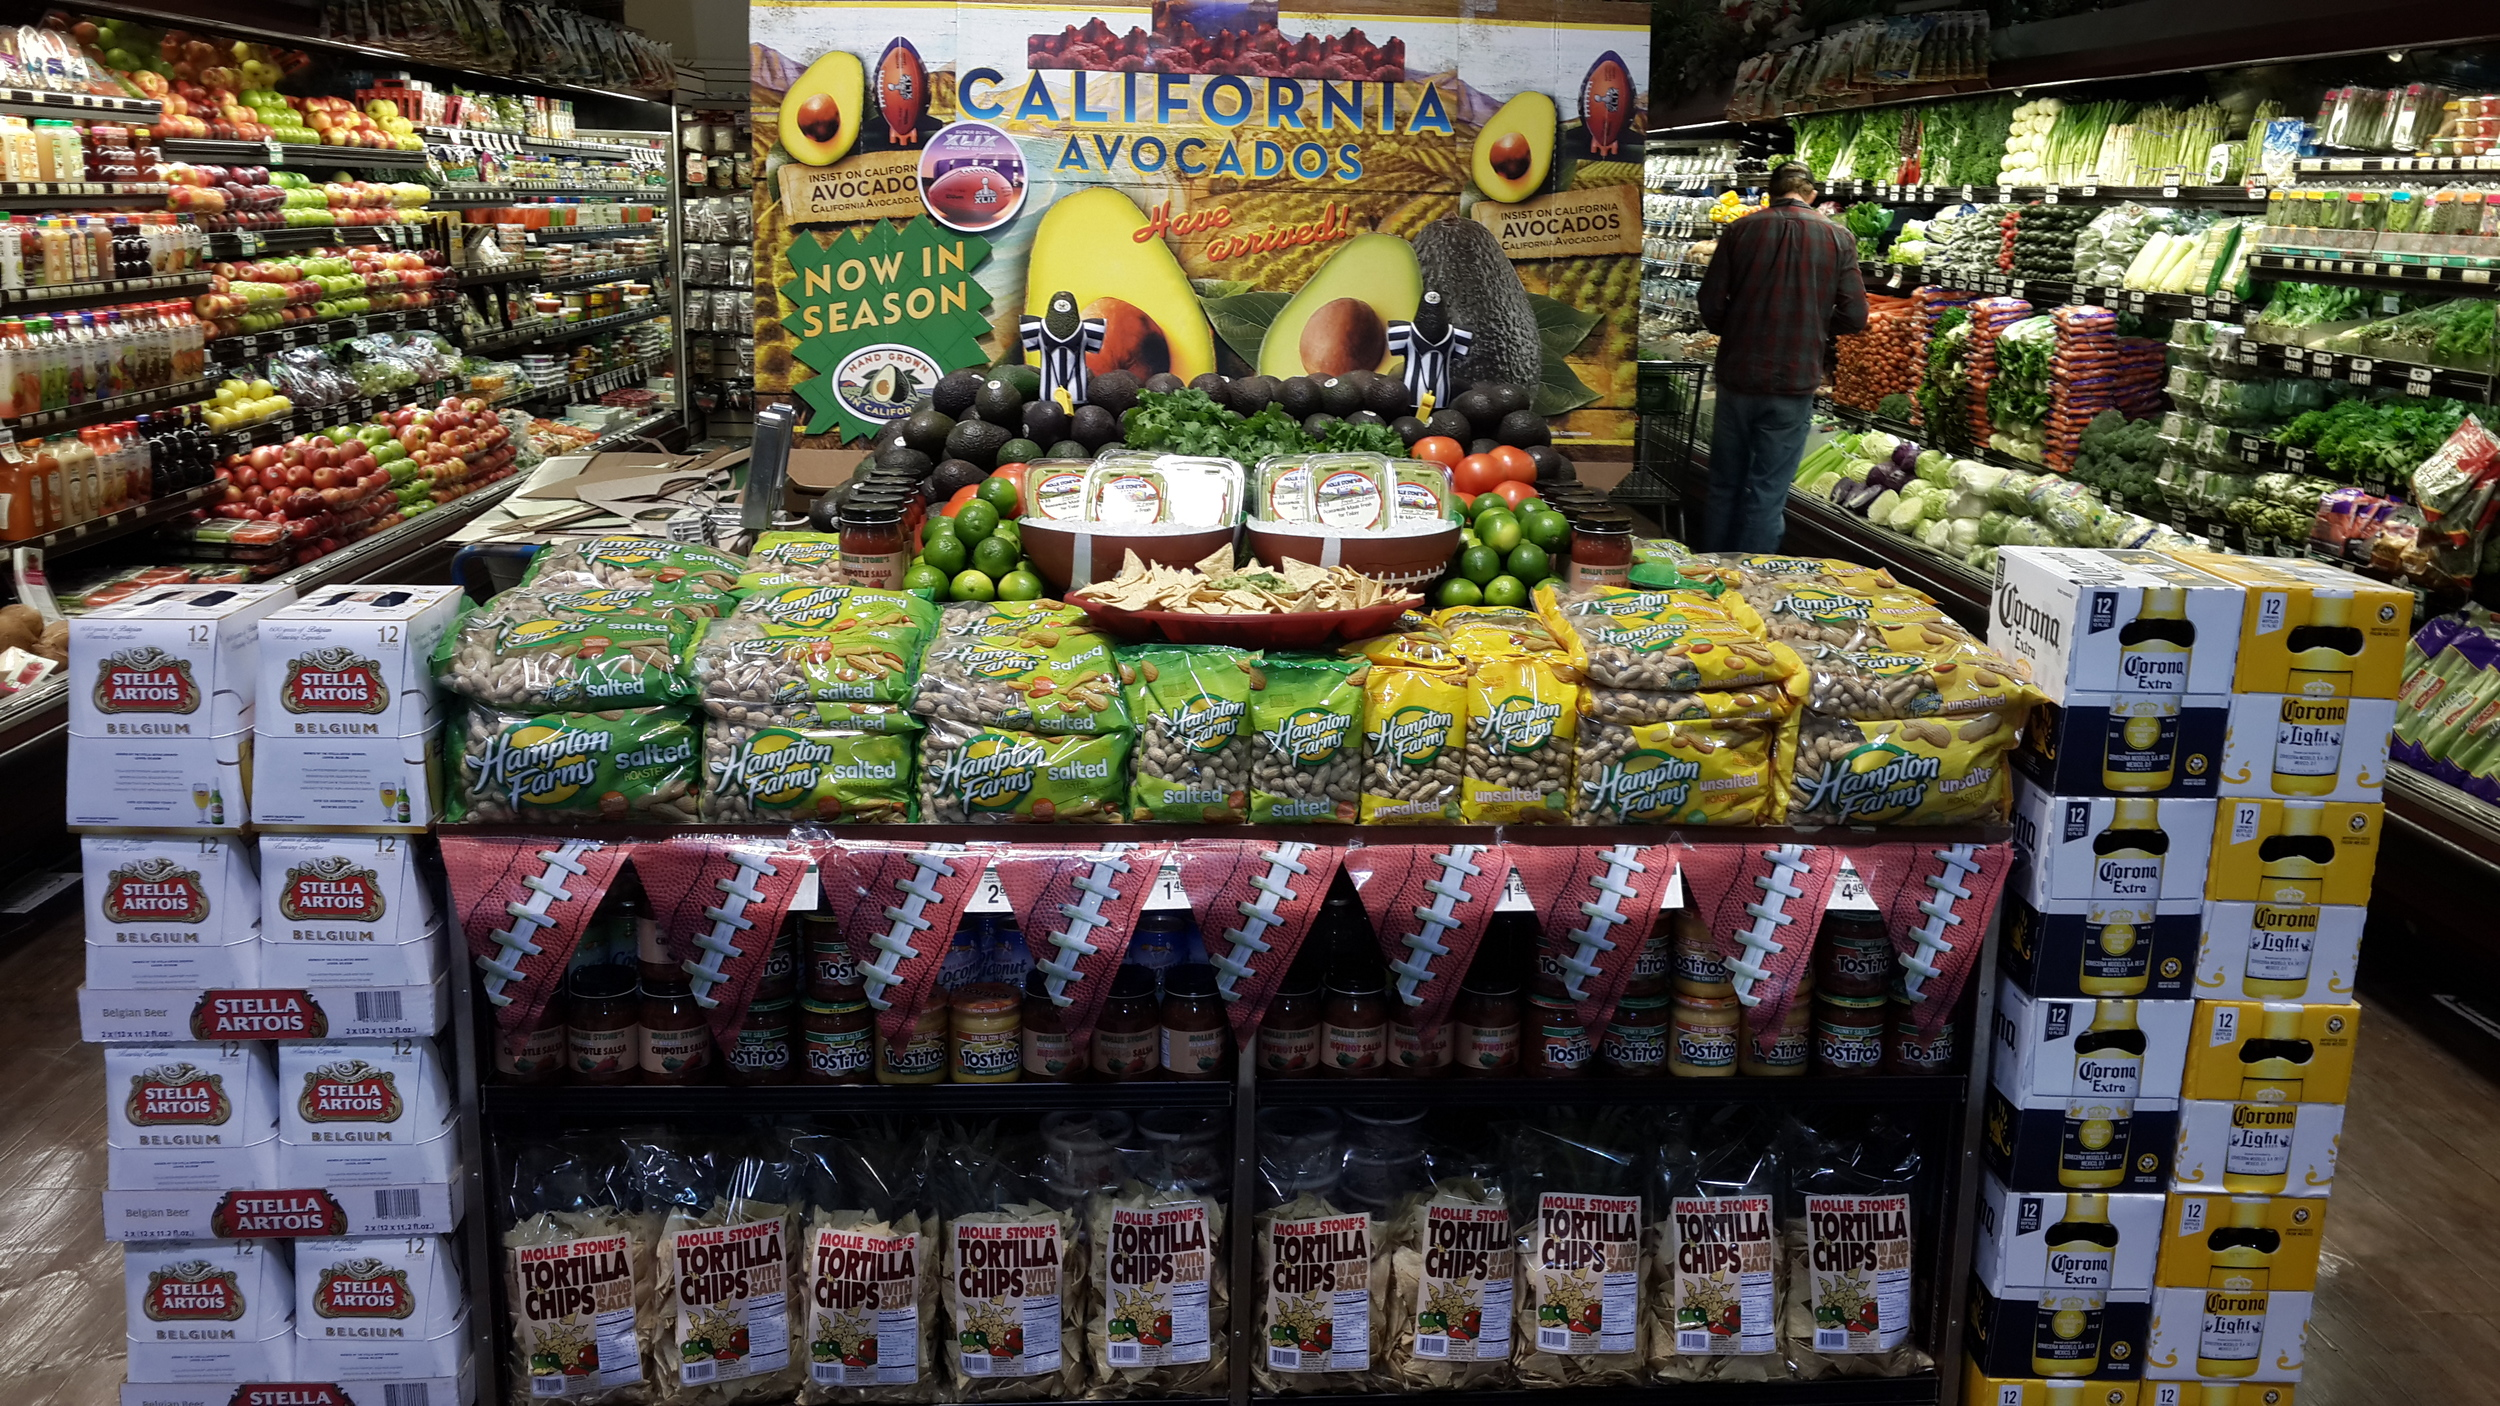 The Mollie Stone's supermarket on Portola Drive offers a wide selection of gourmet fare and is a favorite with residents.